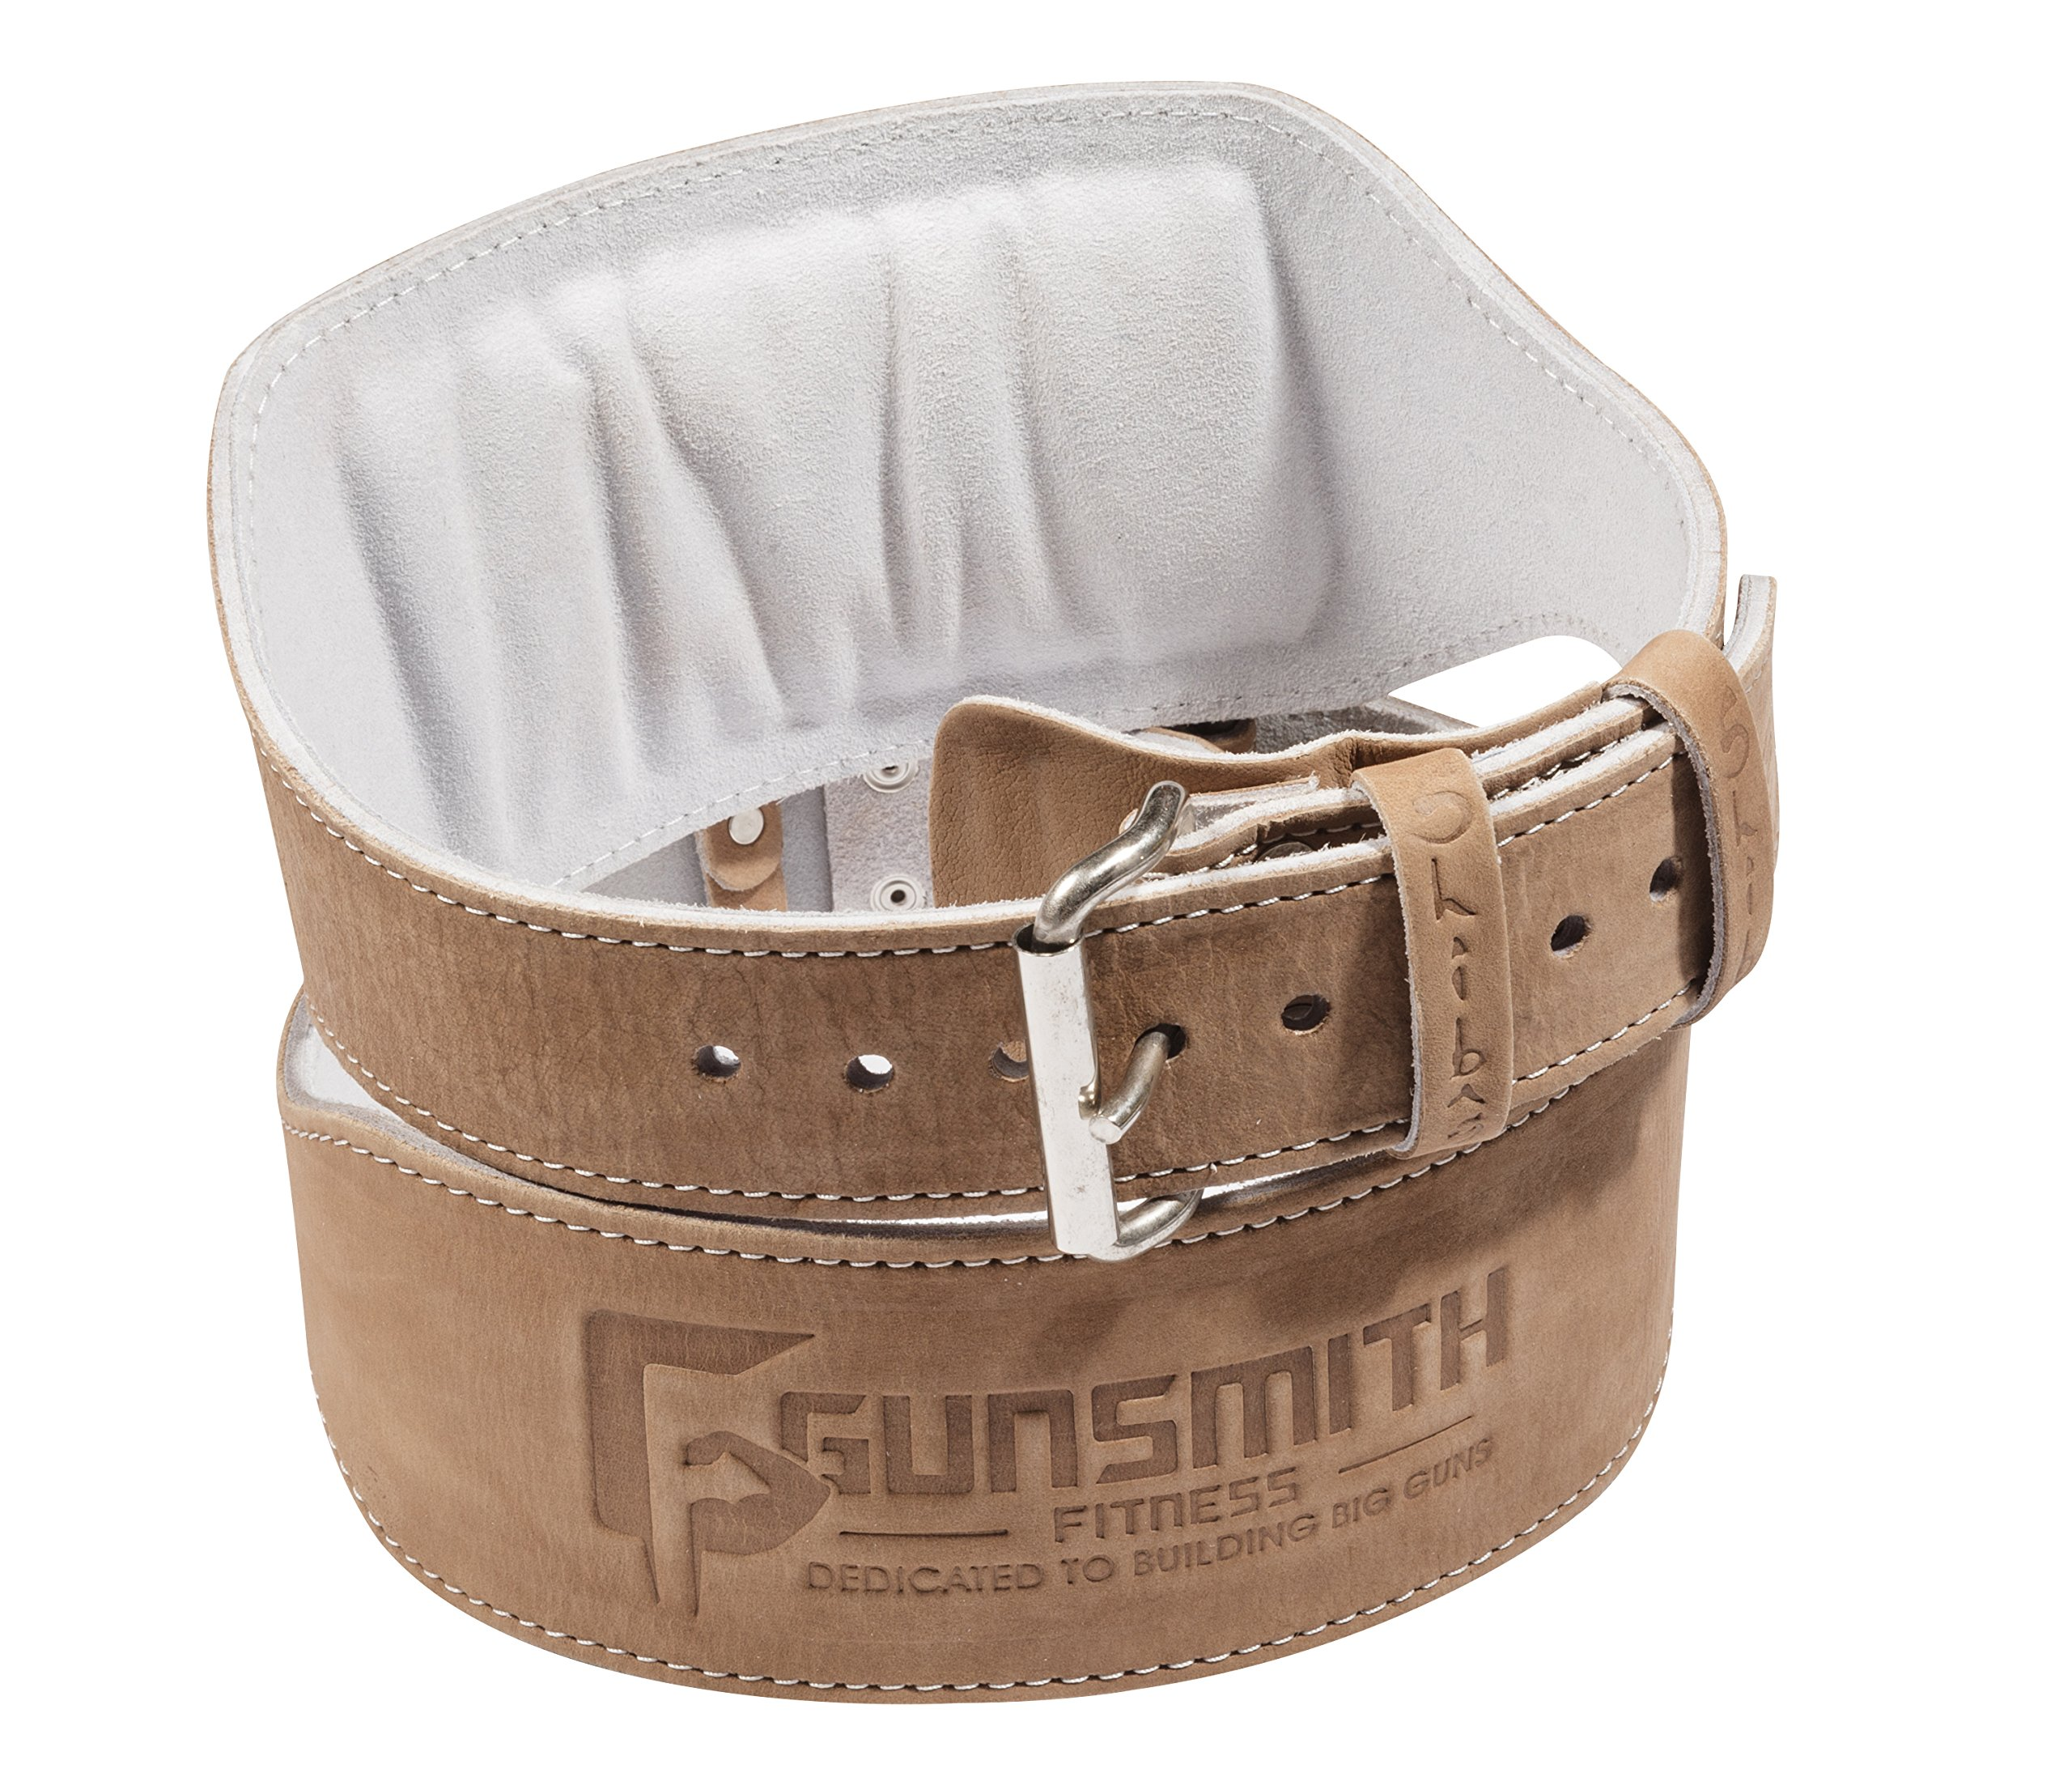 Gunsmith Fitness Premium 100% Real Genuine Leather Individually Handmade, Advanced Weight Lifting, Powerlifting & Bodybuilding (4-Inch width, Small (Fits 23-29 inches))